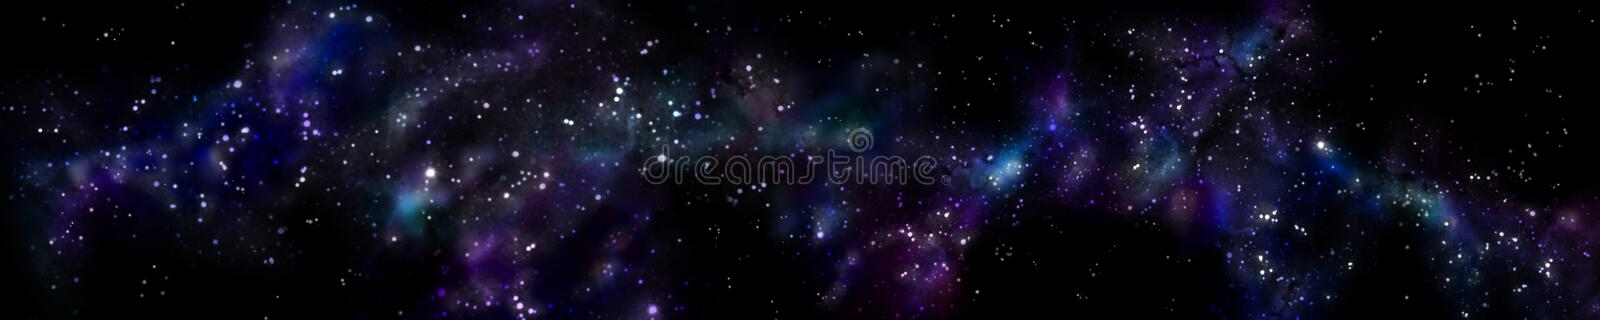 Panorama starry landscape. Panorama of the universe stock image